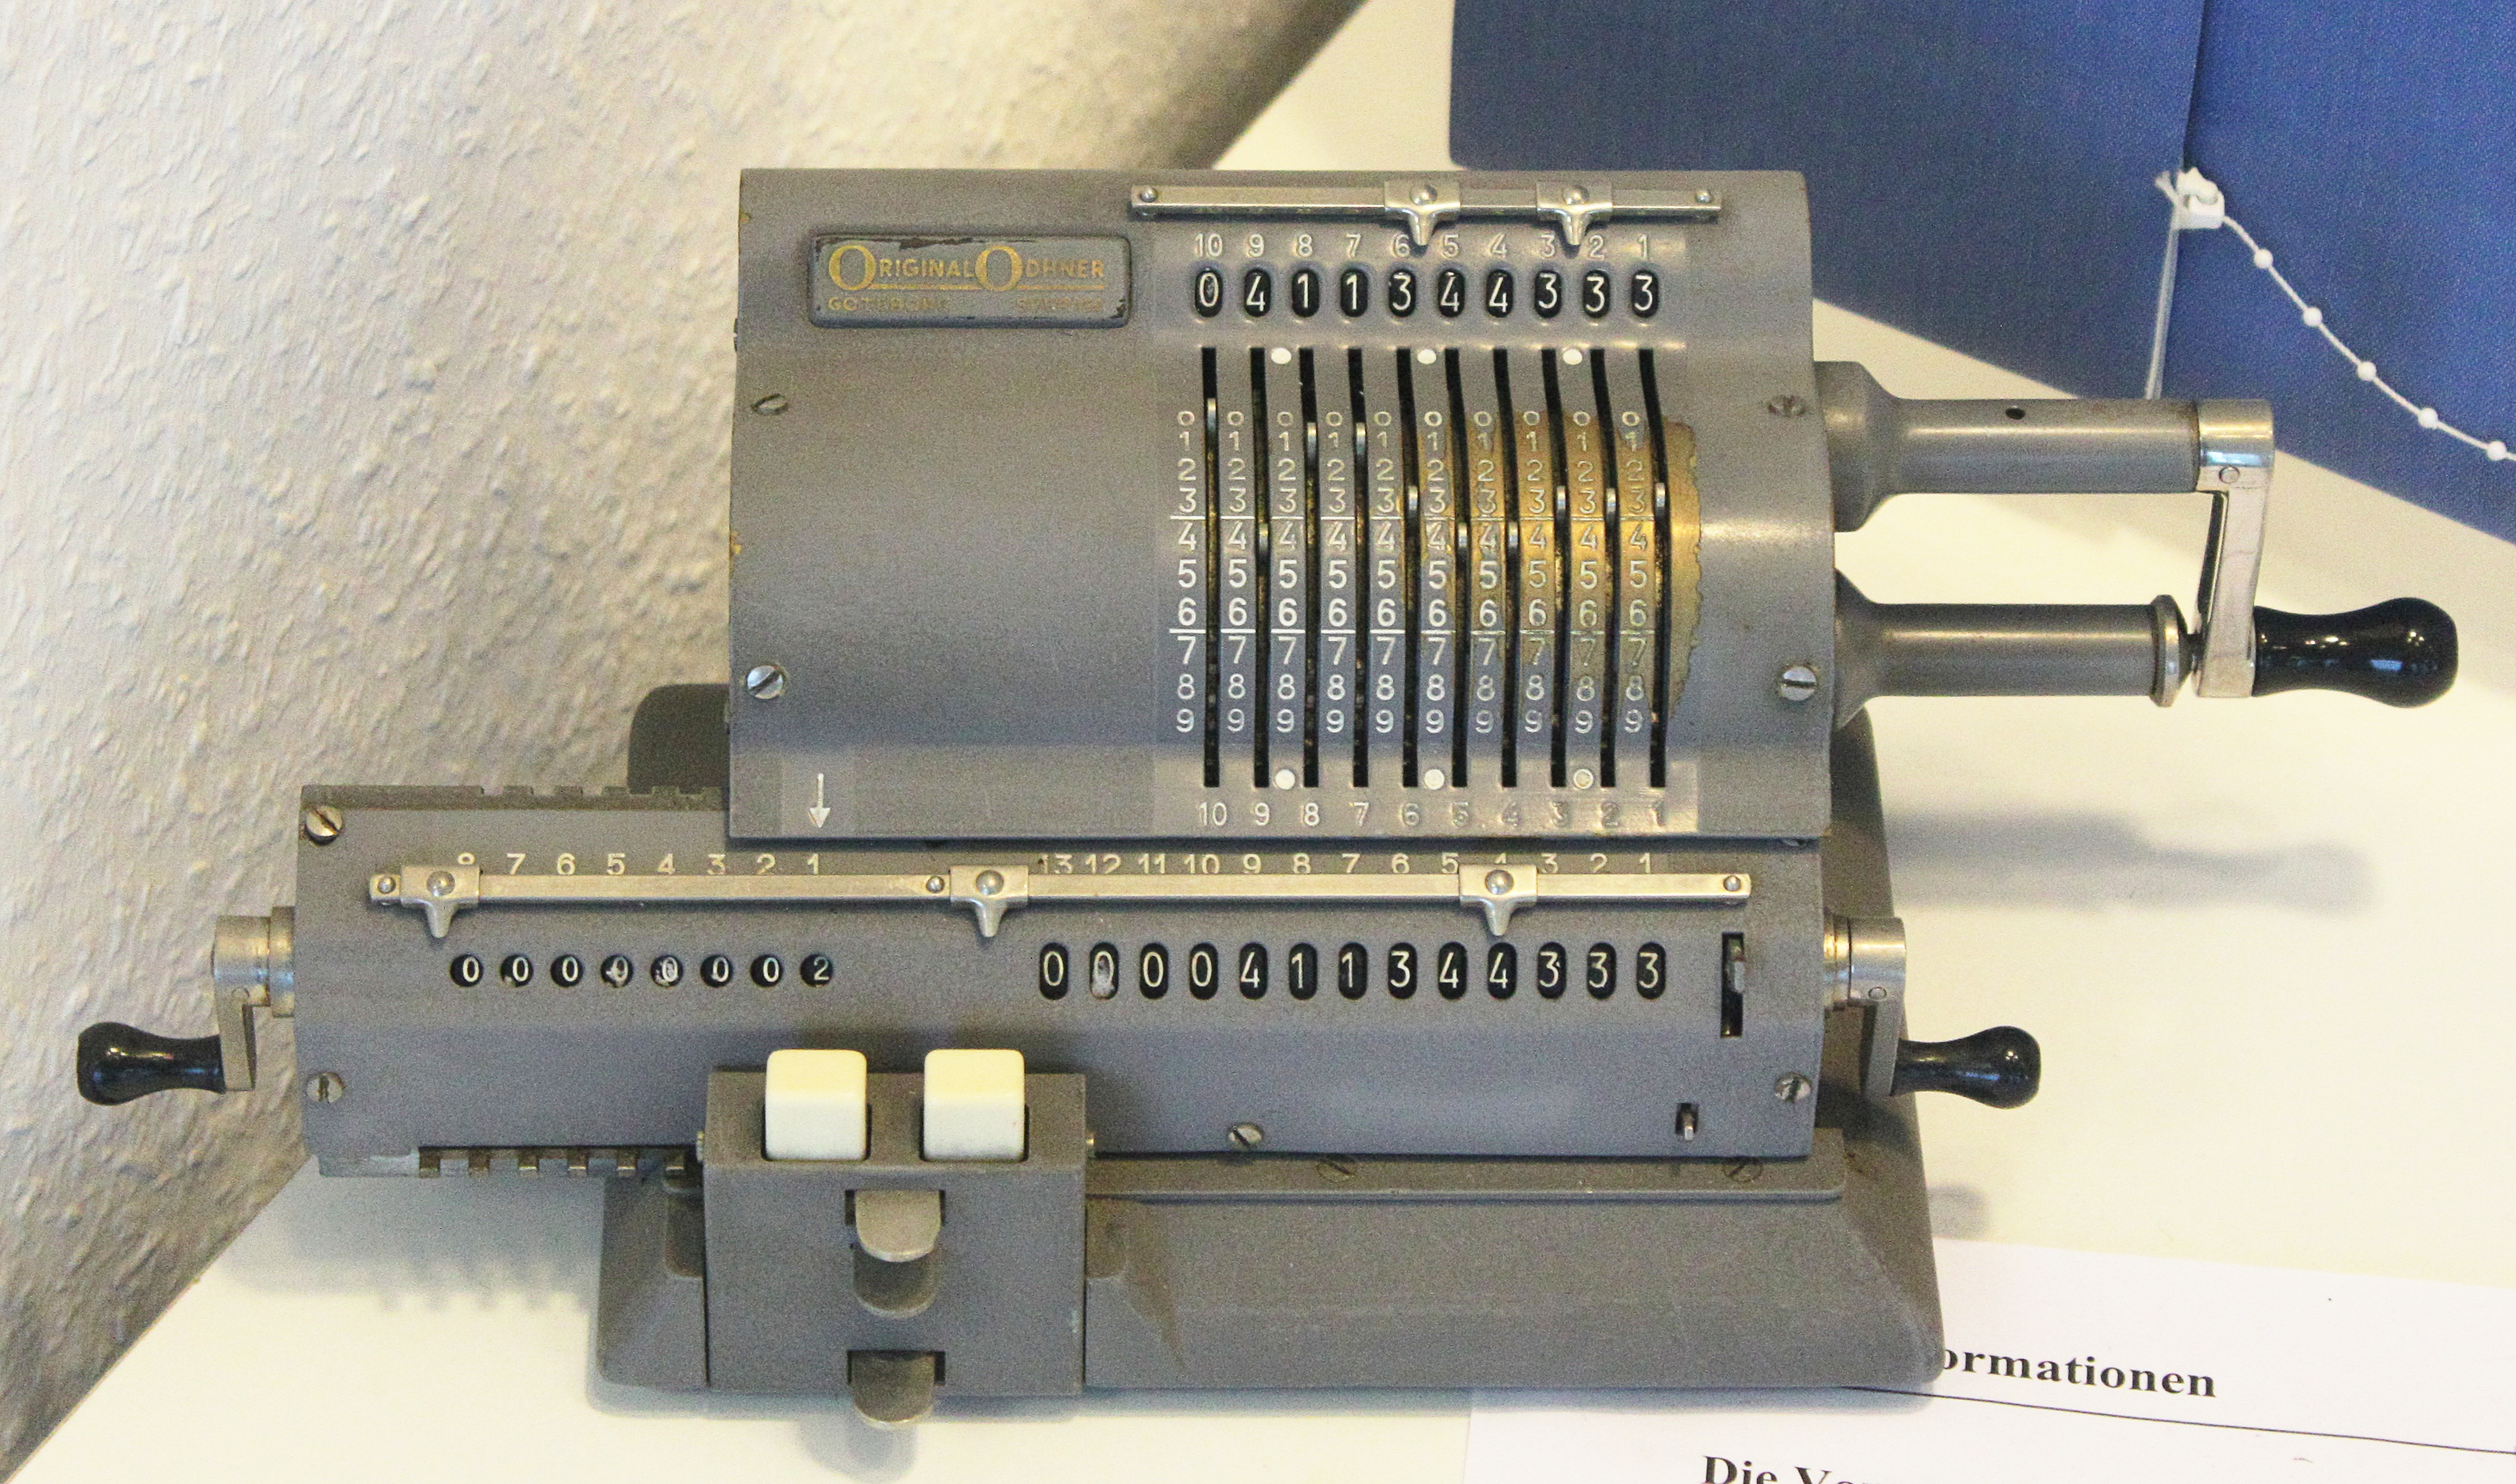 http://upload.wikimedia.org/wikipedia/commons/c/ce/Original_Odhner_Vintage_Mechanical_Calculator_Goteborg_PD_1.JPG